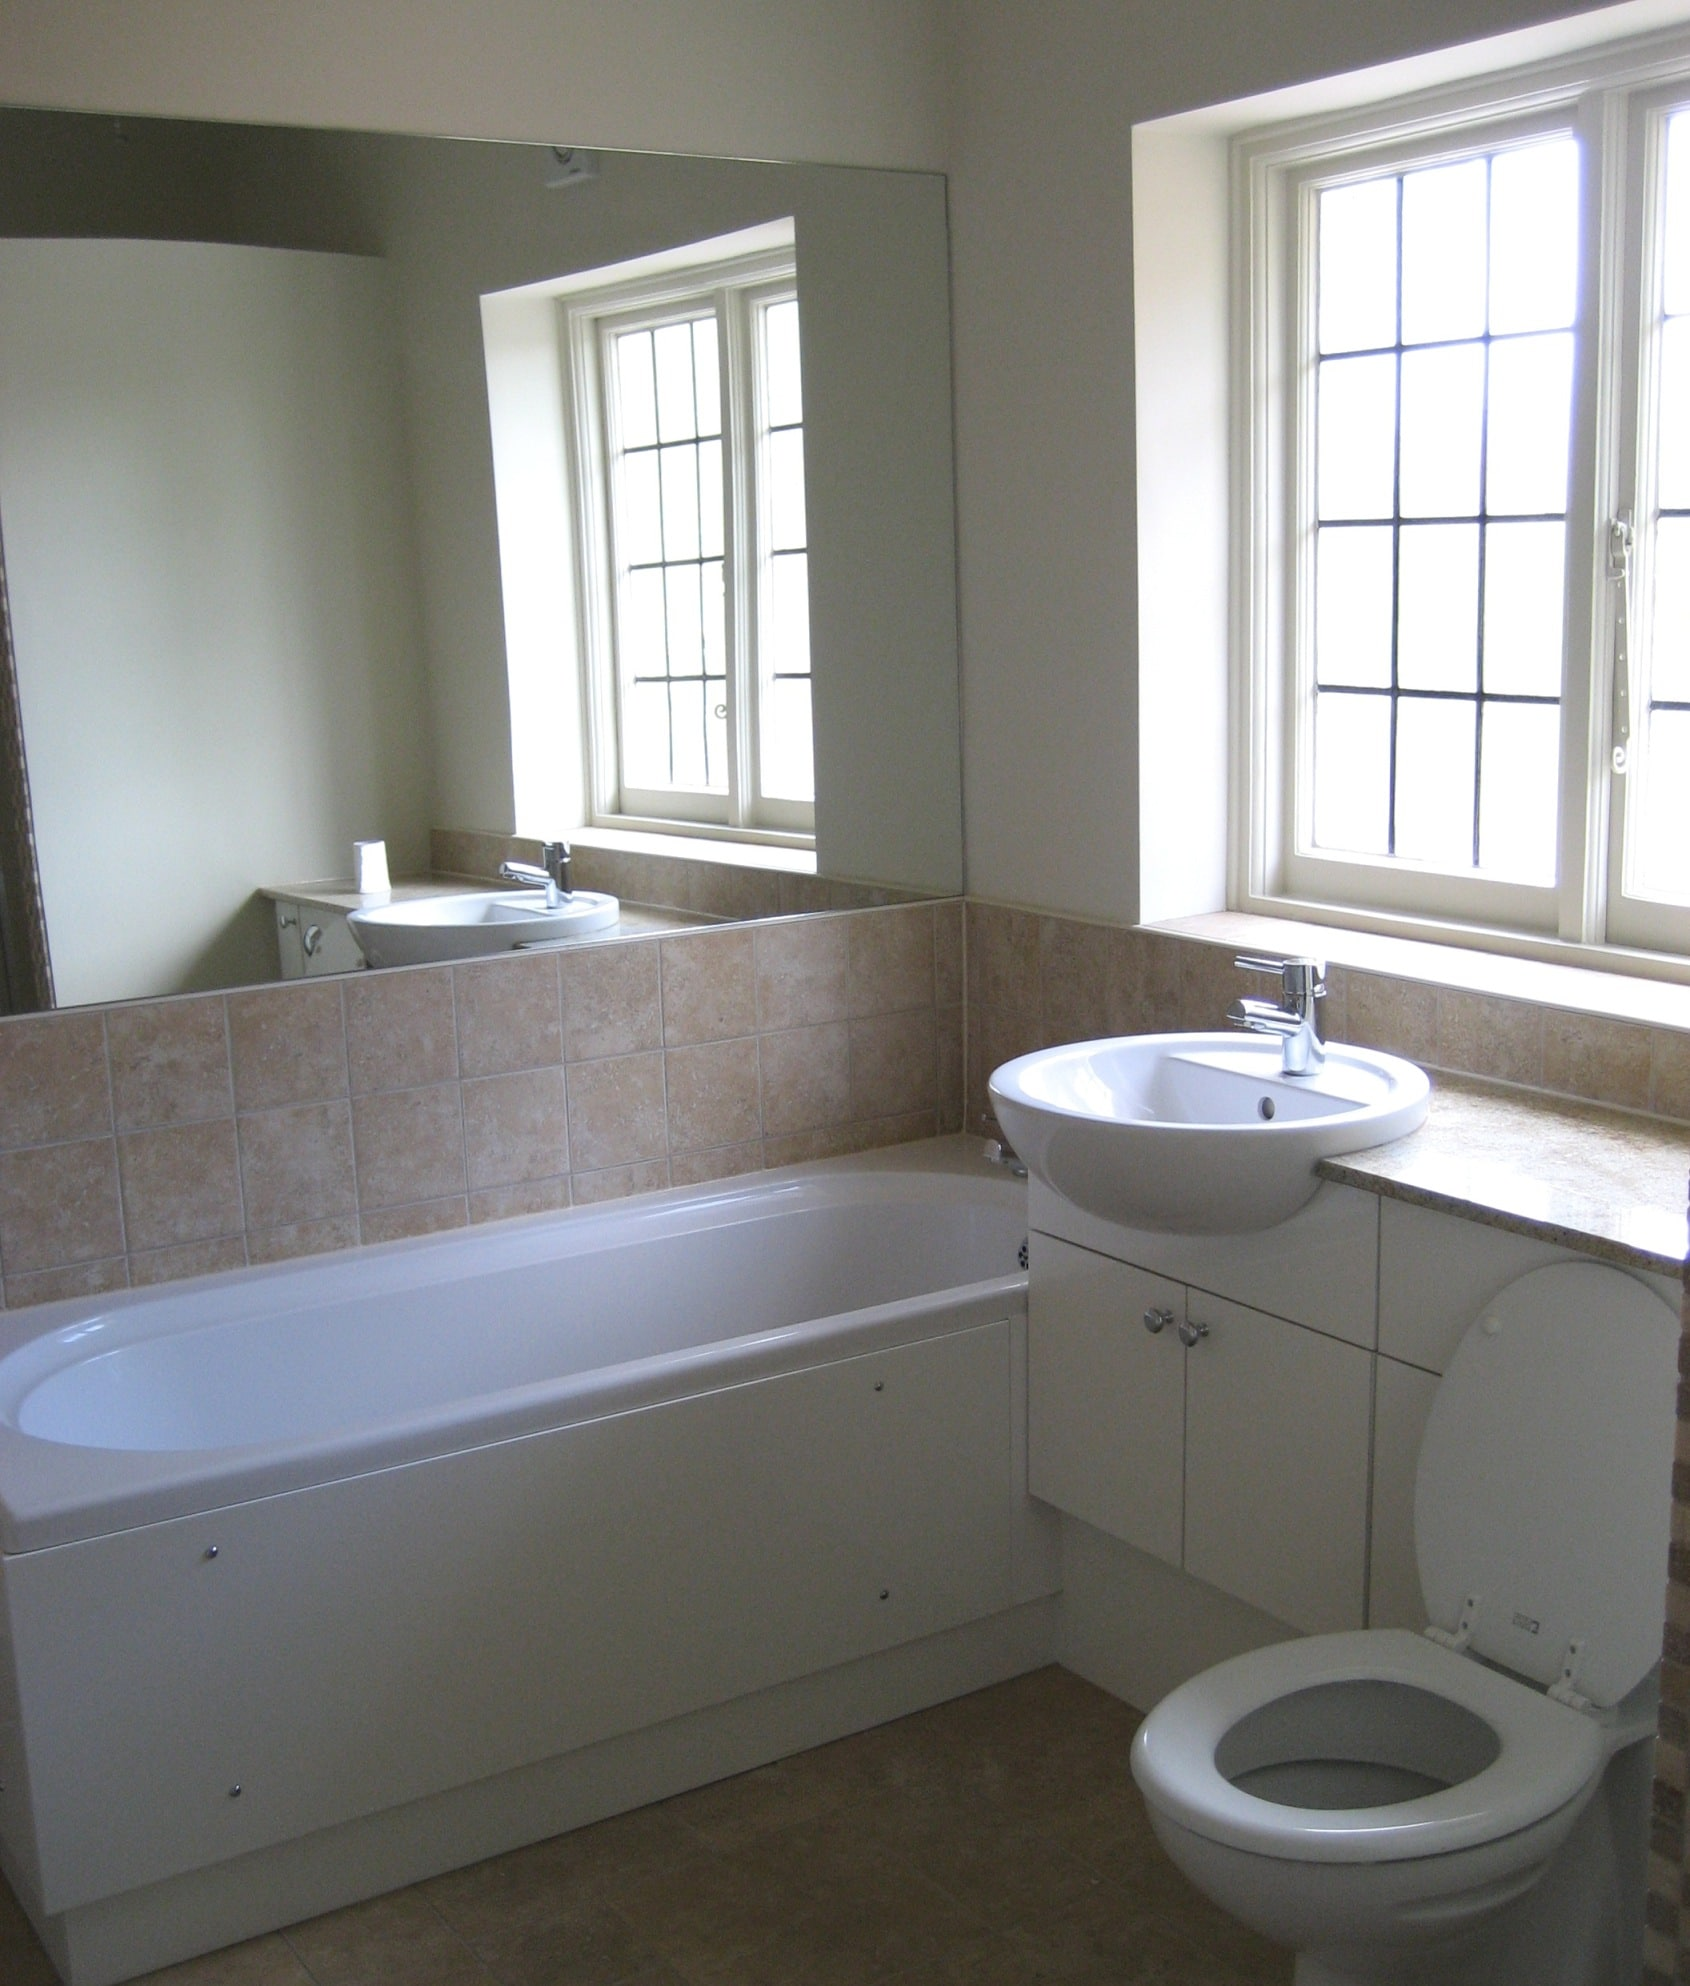 Bathrooms Gallery Transforming Homes For Over 30 Years Expert Builders Quality Workmanship